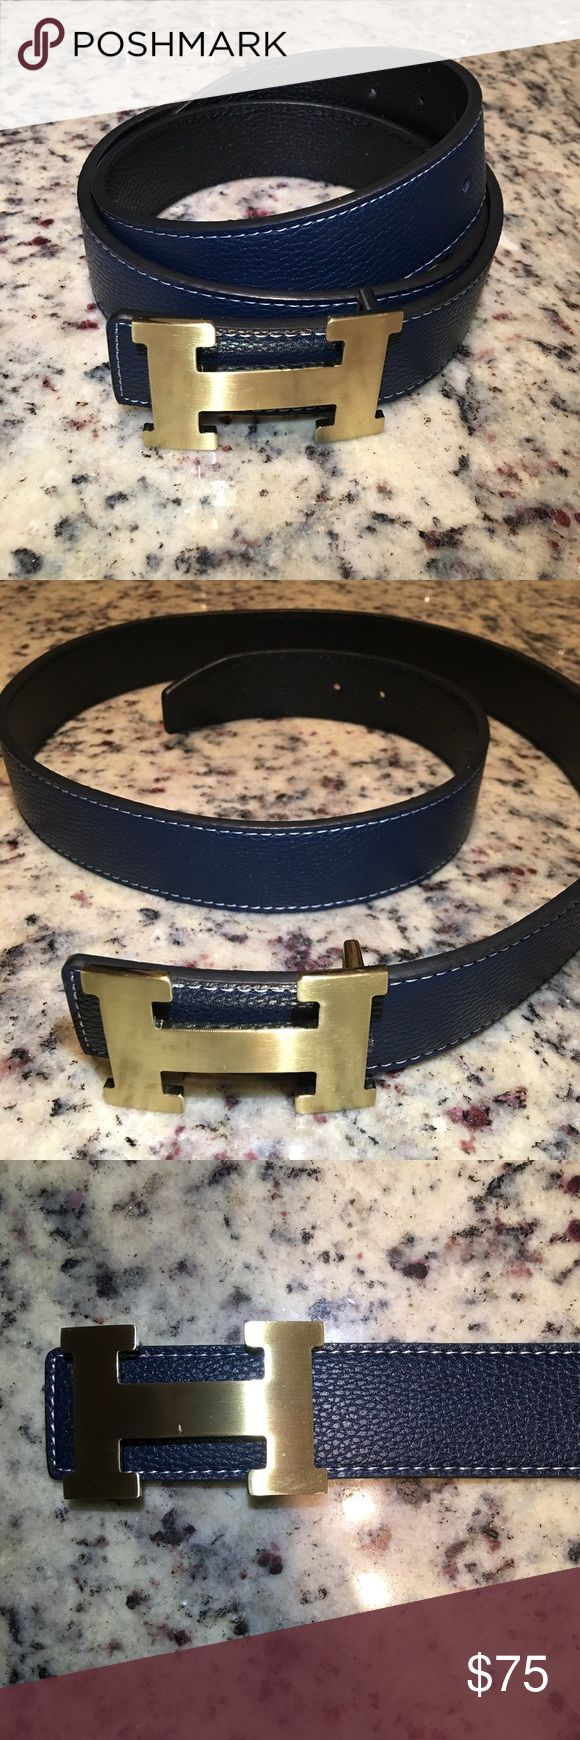 High Quality Hermes from Original Versions What you see it's what you'll get. Beautiful Top quality Hermes from original versions. Blue belt with gold buckle in size 47 inches / 120 centimeters and I can make extra wholes to adjust to smaller size... this belt has a small cut in the back of it and you can see it in the picture I posted. Hermes Accessories Belts